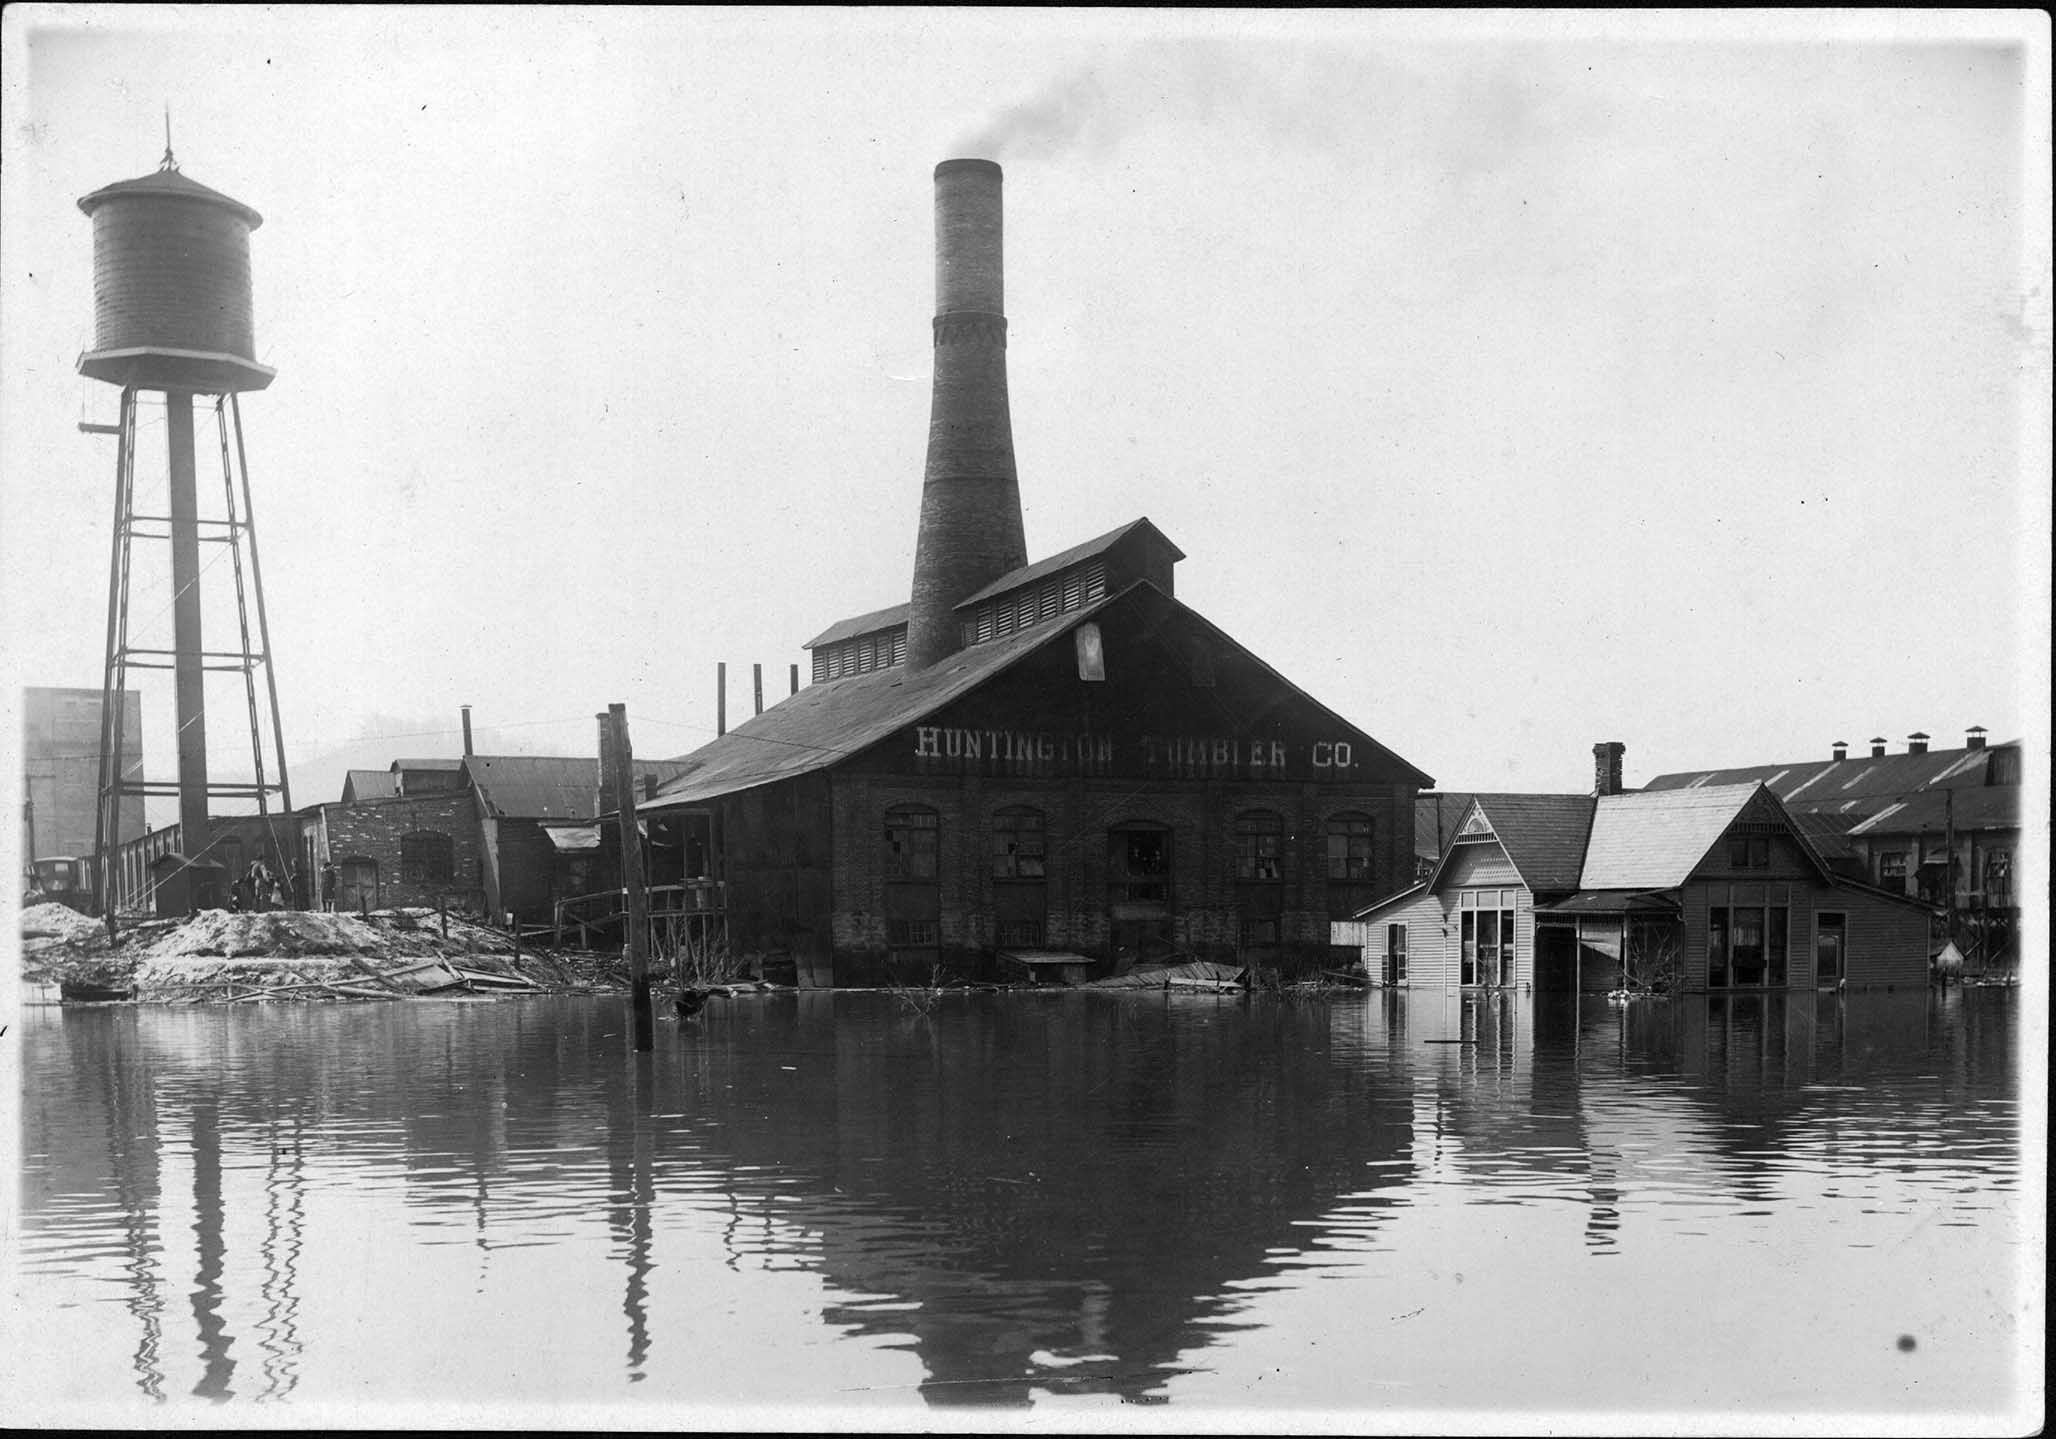 Huntington Tumbler during the Flood of 1937. The factory, of which nothing remains, stood on Fifteenth Street between Jefferson and Madison Avenues. Image courtesy of Marshall University Special Collections.